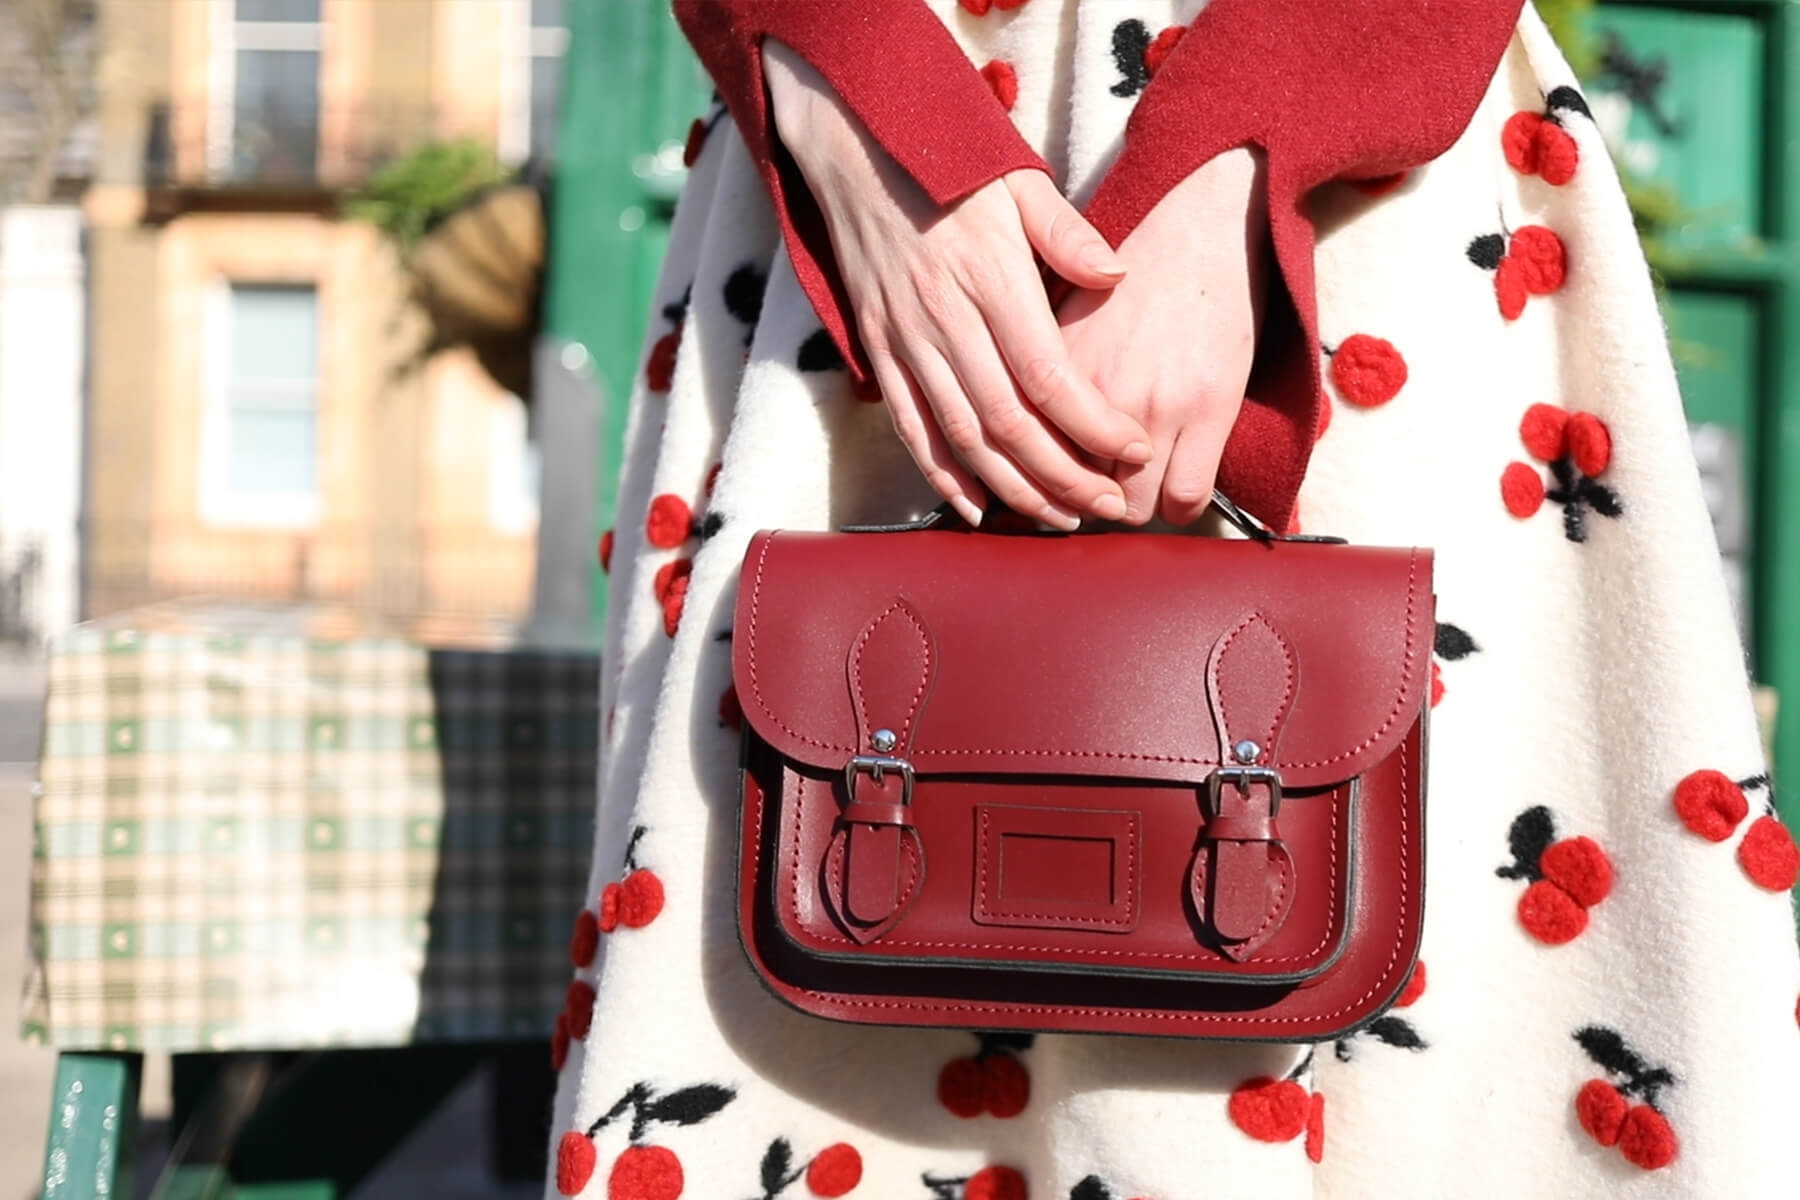 Woman in a dress holding mini satchel handbag in front of herself